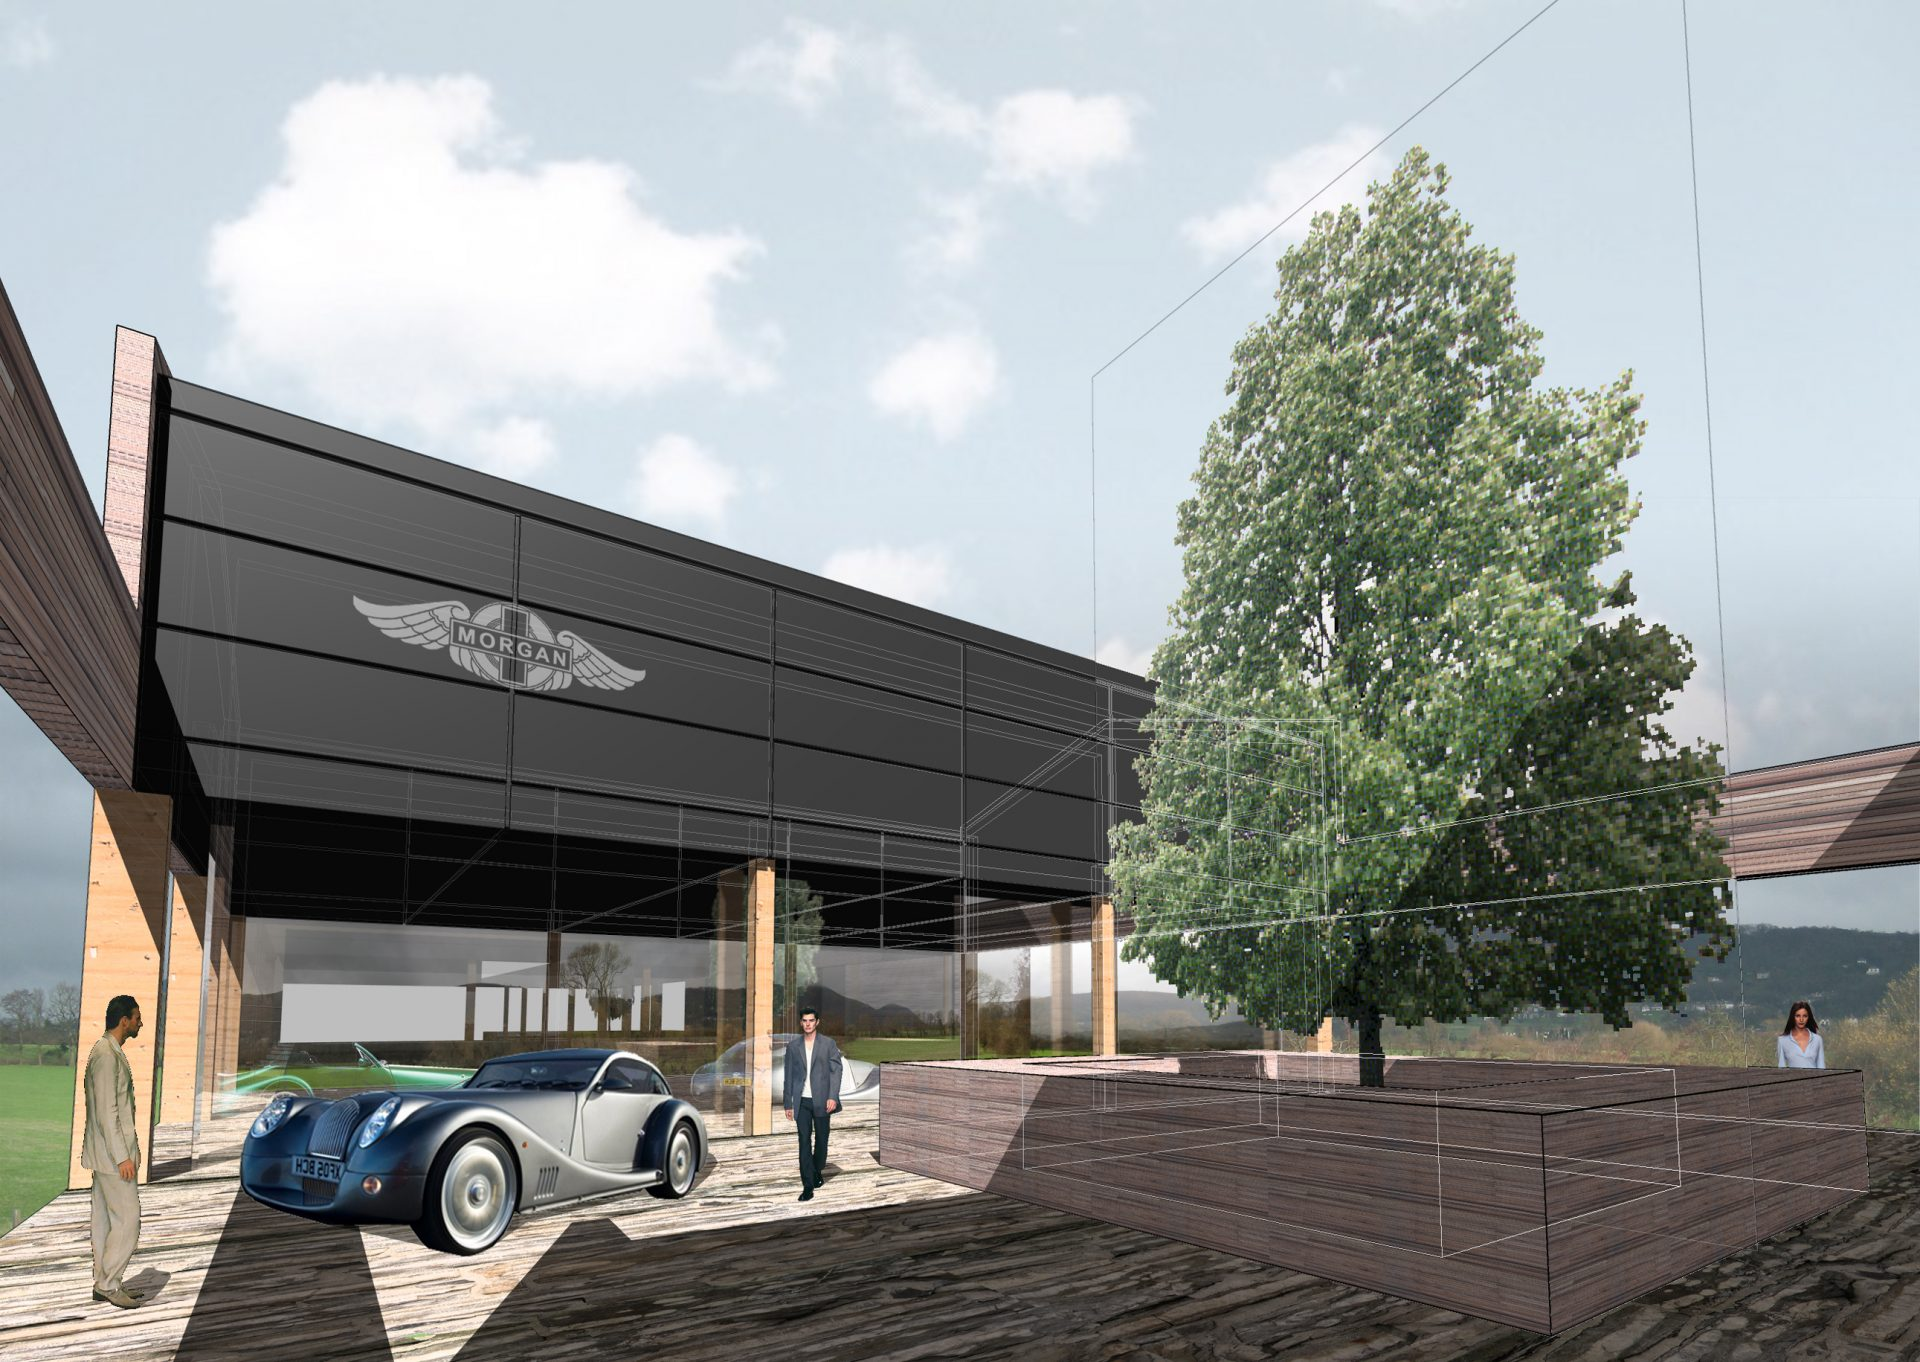 Morgan Motor Company Courtyard Visualisation